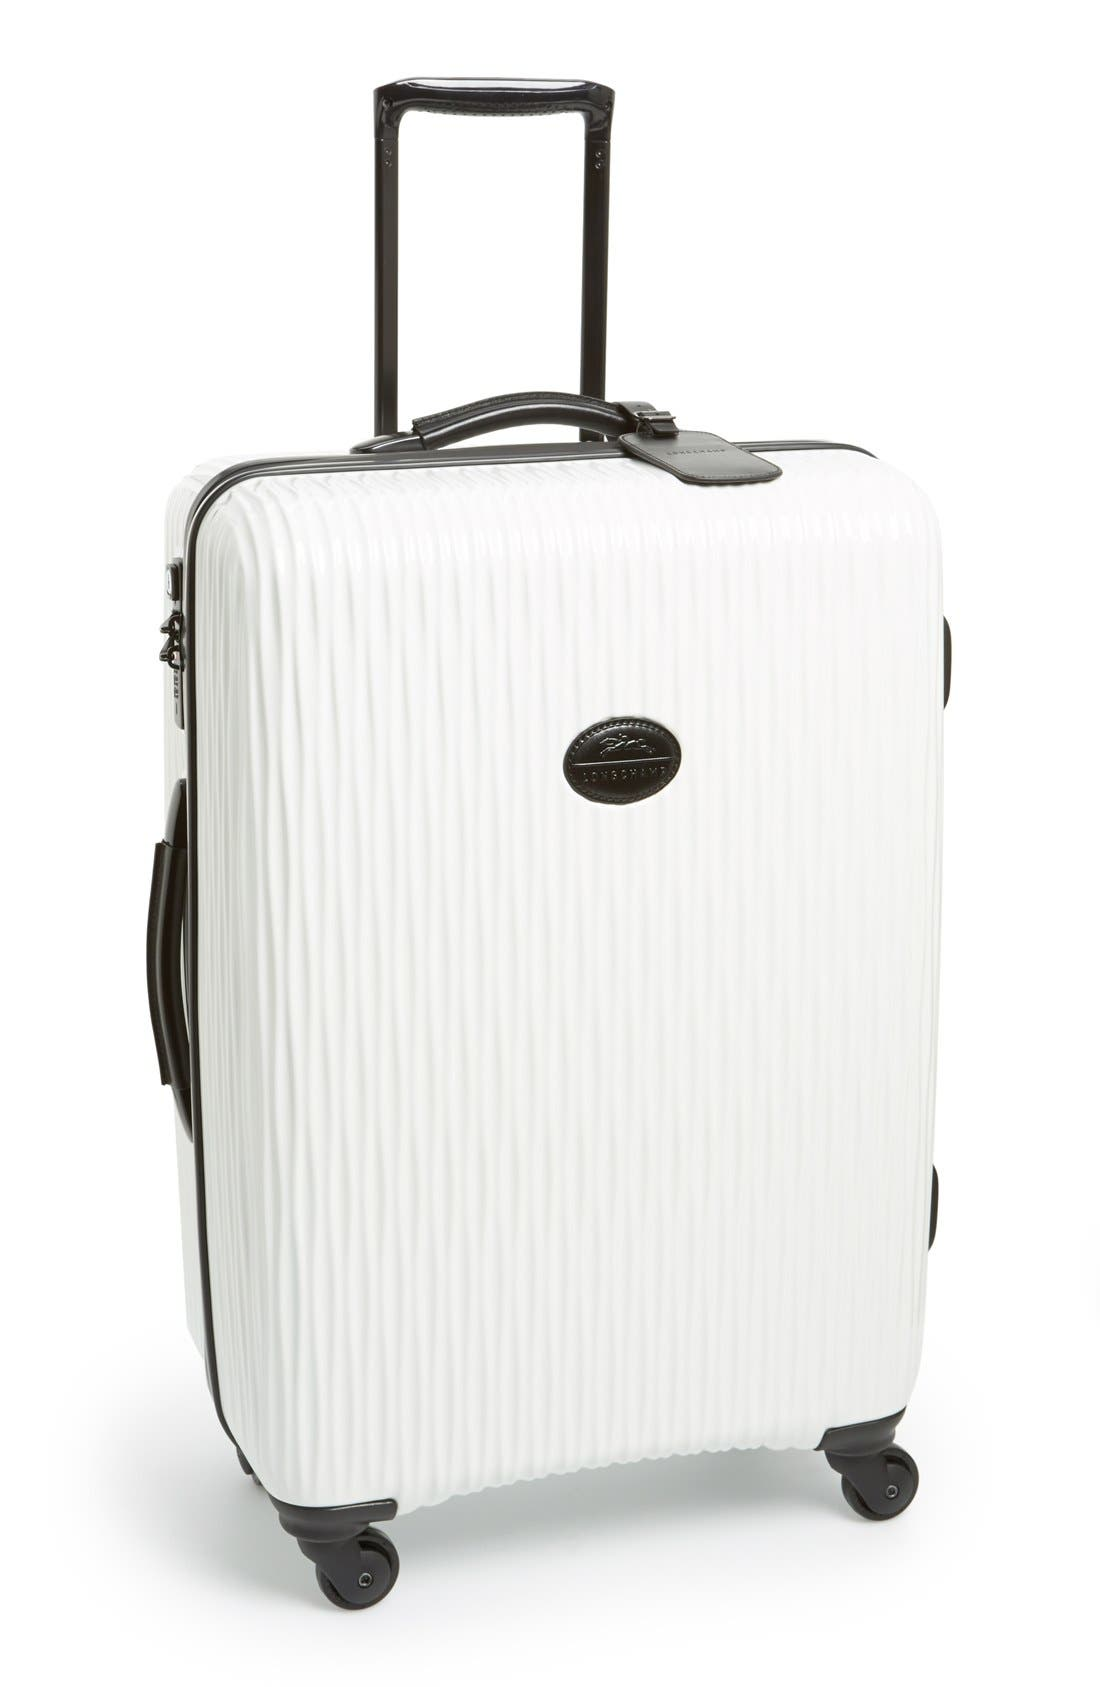 Alternate Image 1 Selected - Longchamp 'Medium Fairval' Four-Wheel Hard Shell Suitcase (28 Inch)